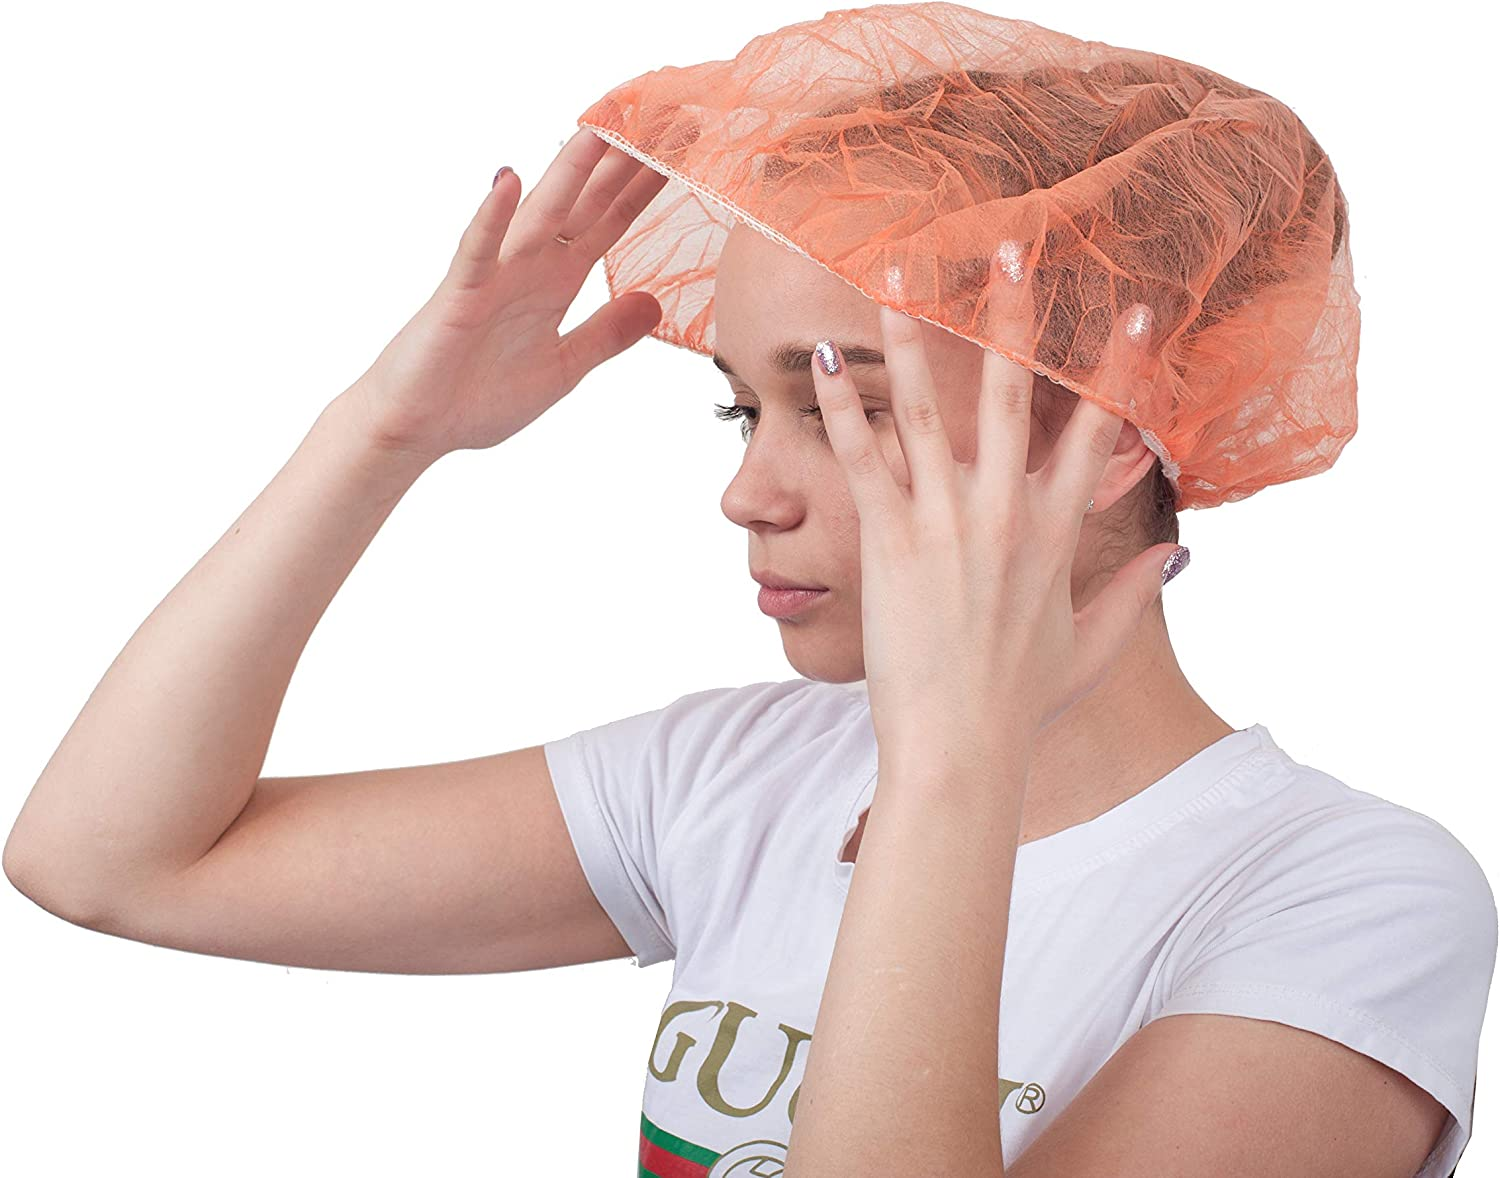 """100 Pack Orange Bouffant Caps 21"""". Non Woven Hair Caps with elastic stretch band. Disposable Polypropylene Hats. Unisex Protective Hair Covers for food service use. Breathable, Lightweight."""